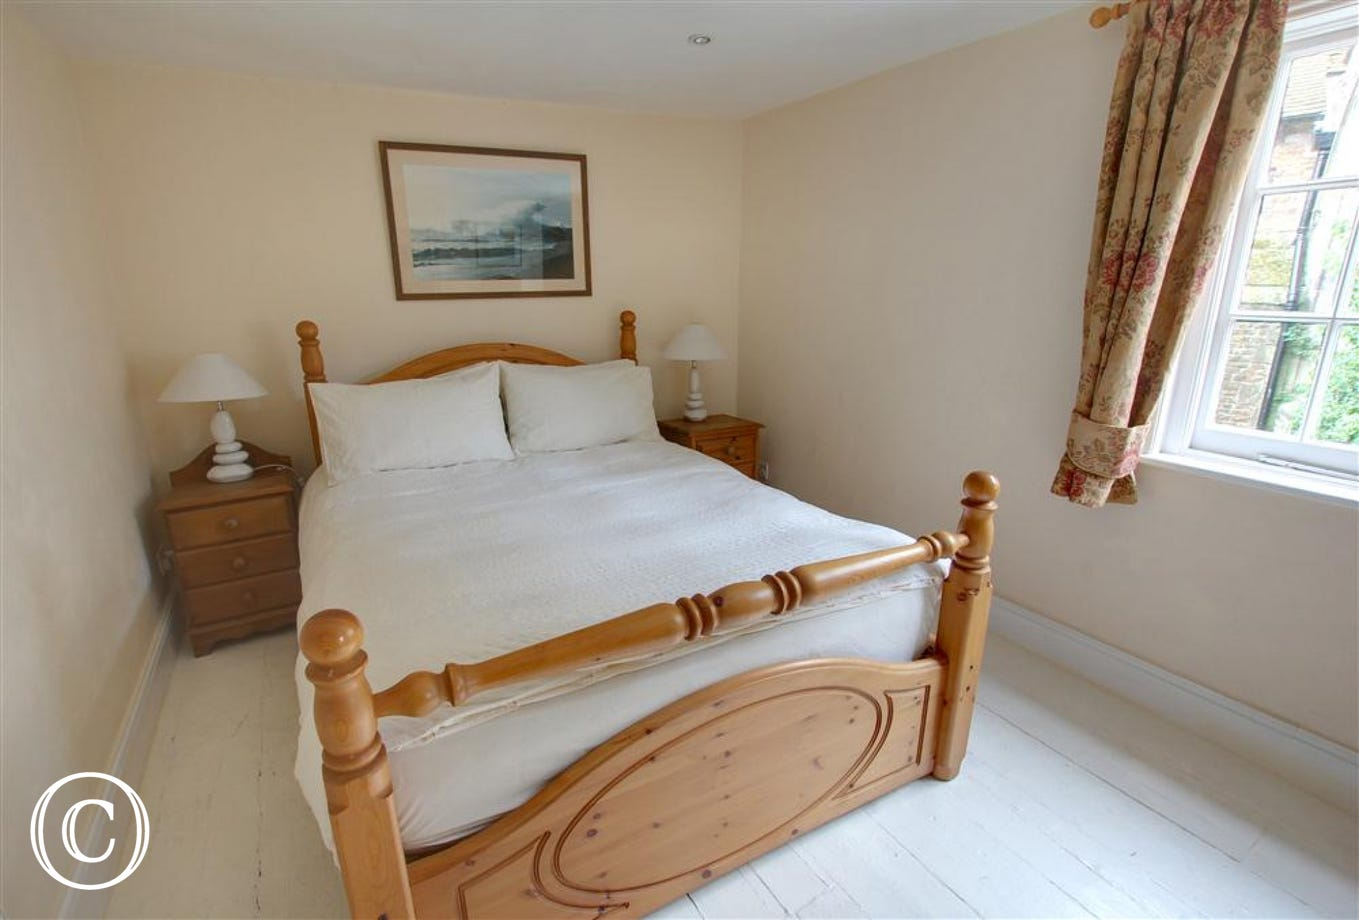 Slightly larger double bedroom with lovely pine bedstead